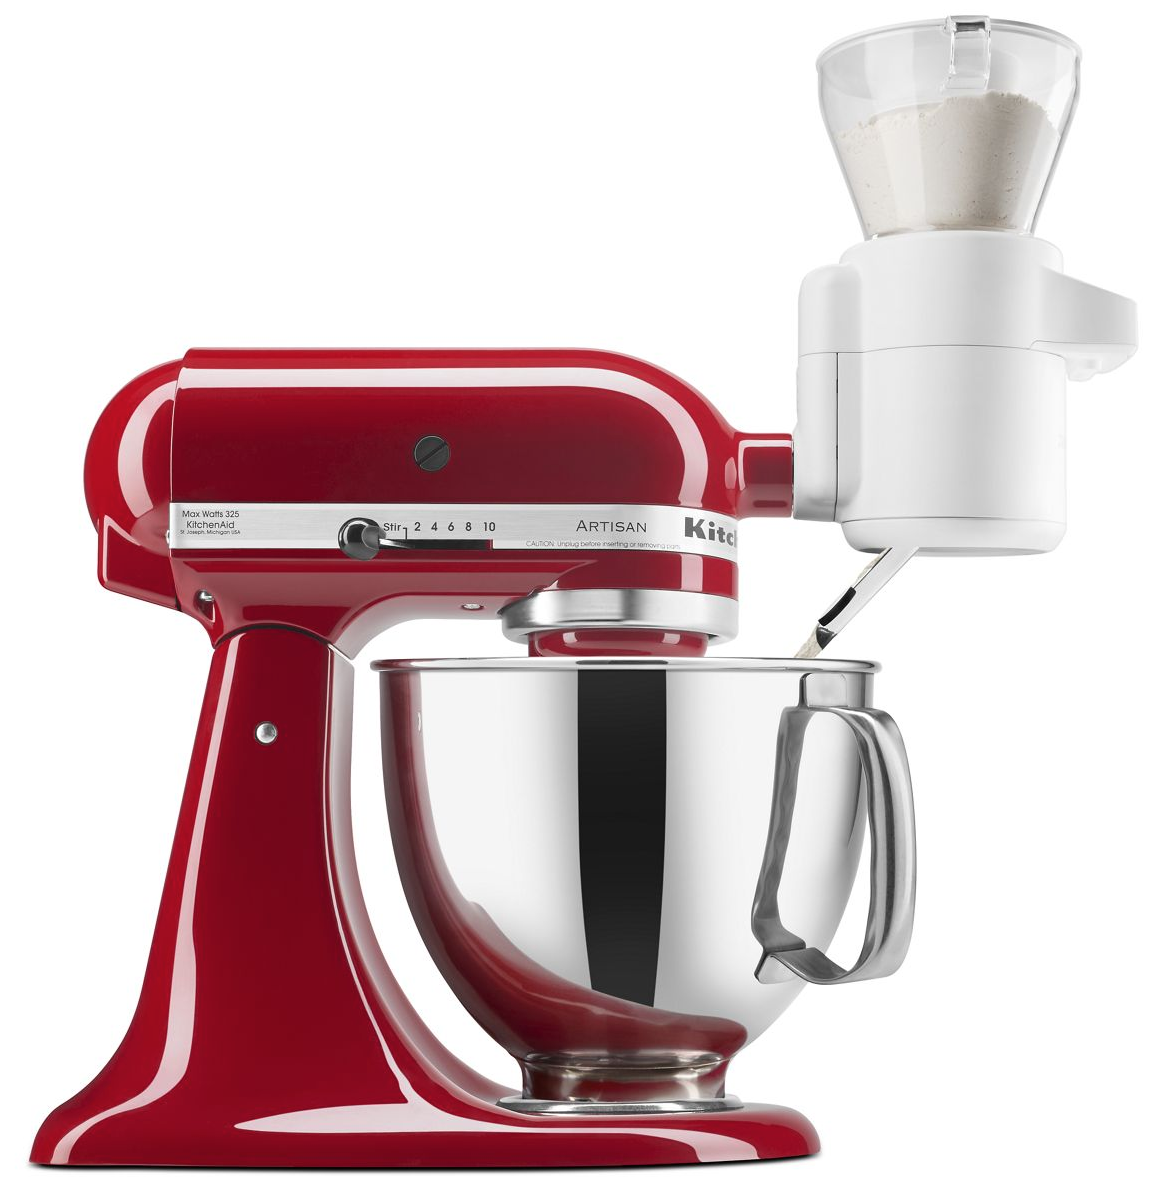 Kitchen Aid Mixer Attachment: KitchenAid's New Stand Mixer Attachment Will Help You Bake